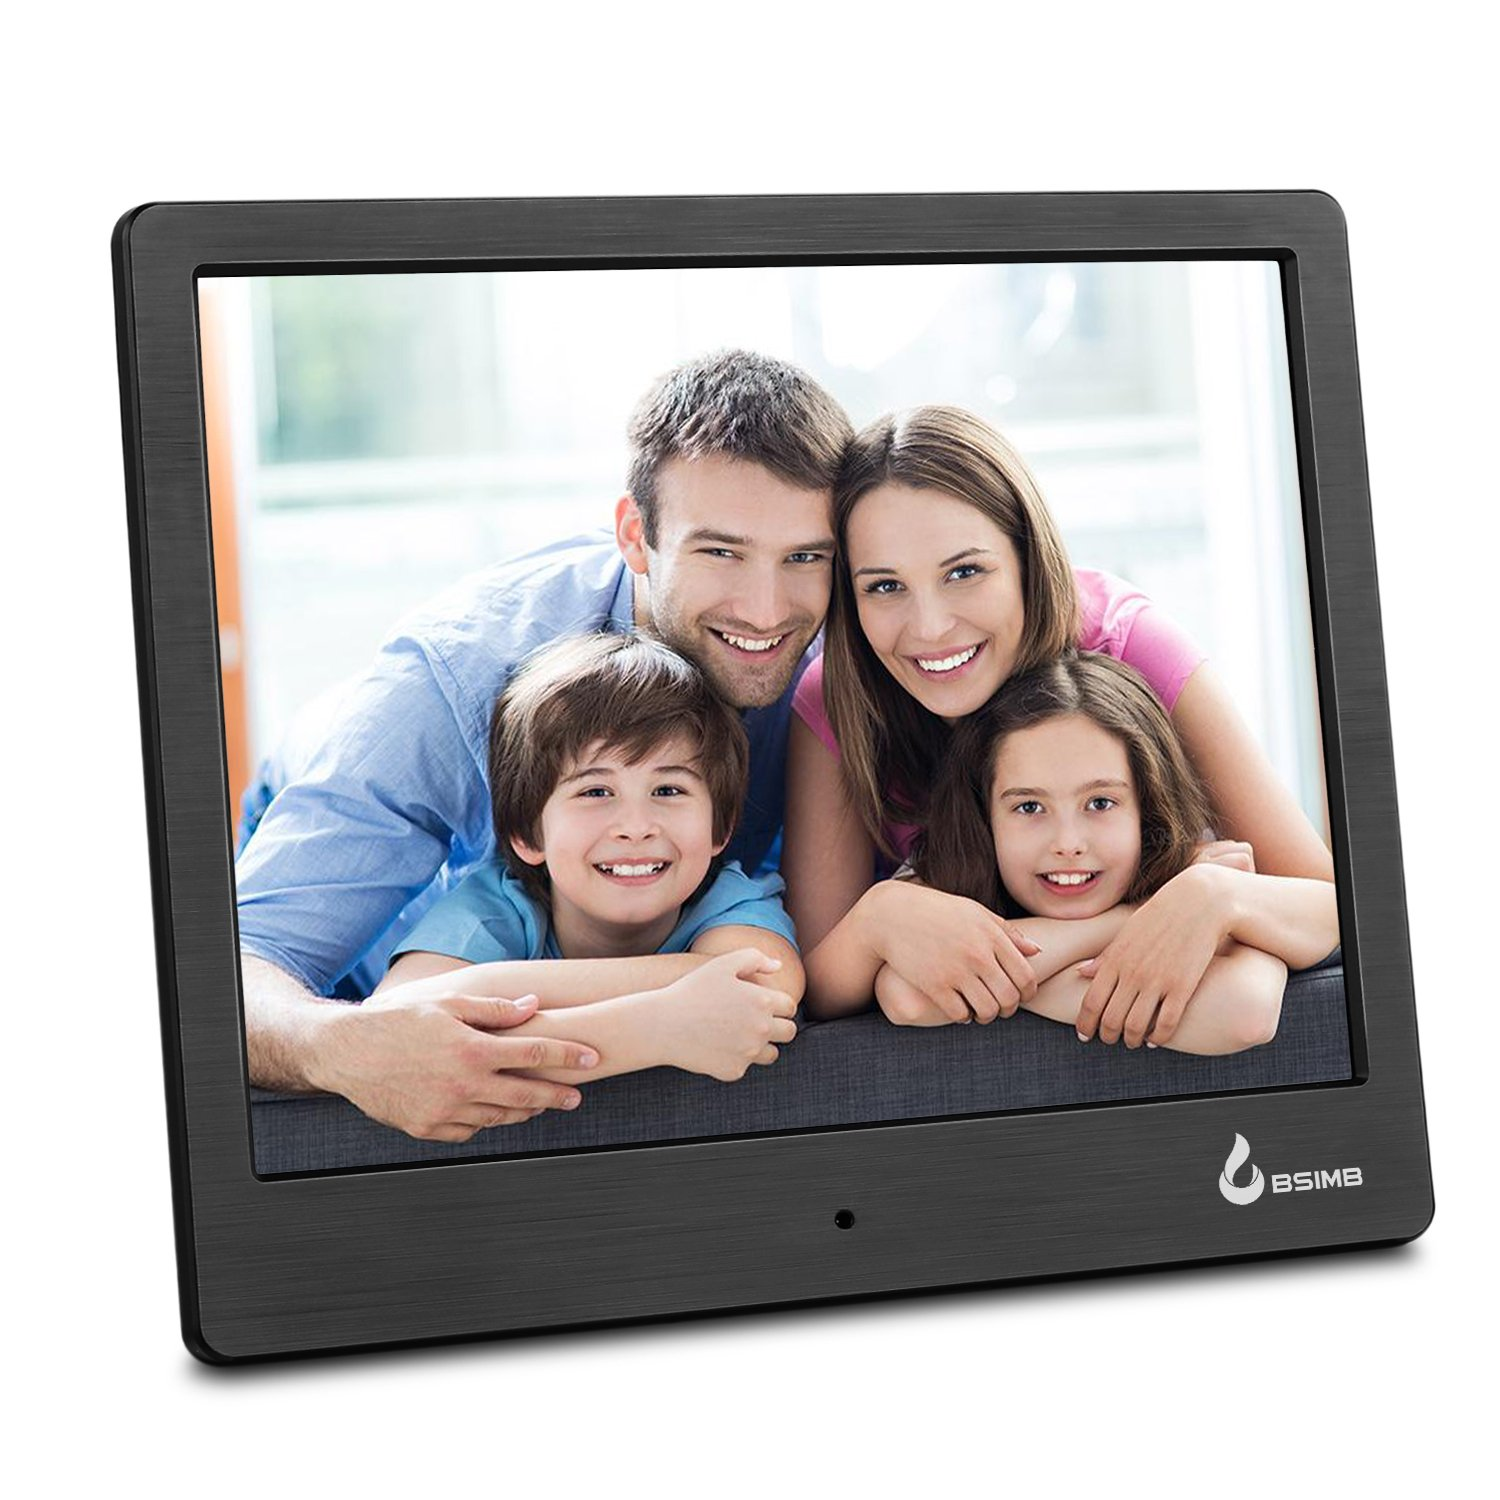 Digital Picture Frame 8'' Digital Photo Frame Electronic Pictures Frame Photos Slideshow Videos Player BSIMB Black M12